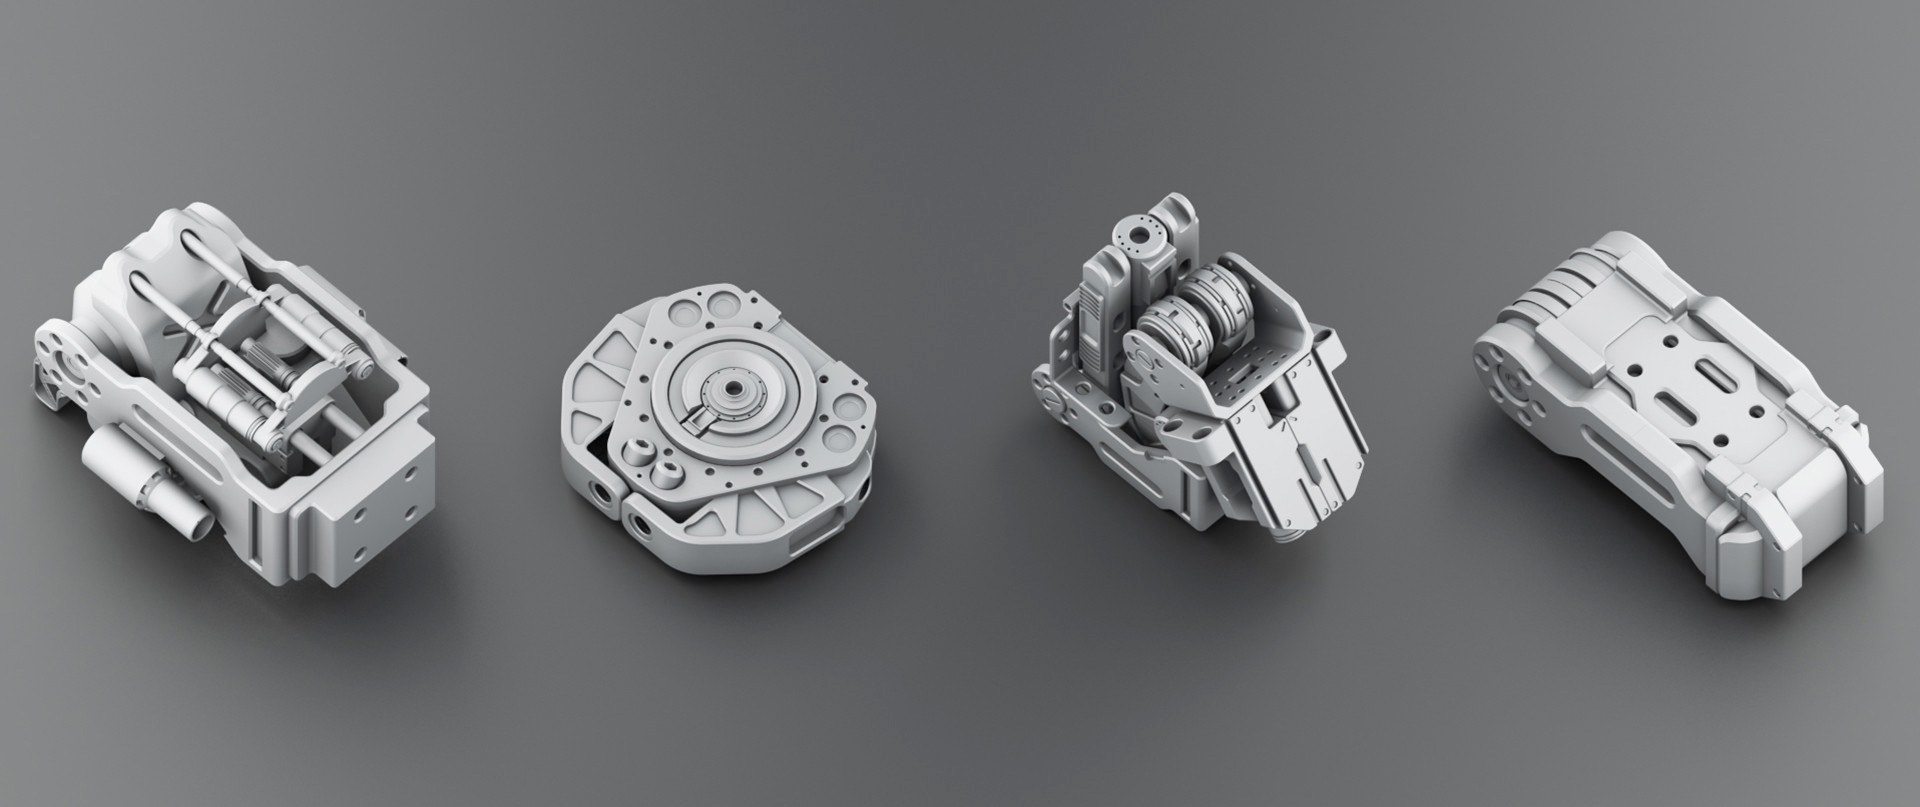 Cinema 4D: Use Kitbash 3D Models to Build a Space Colony in